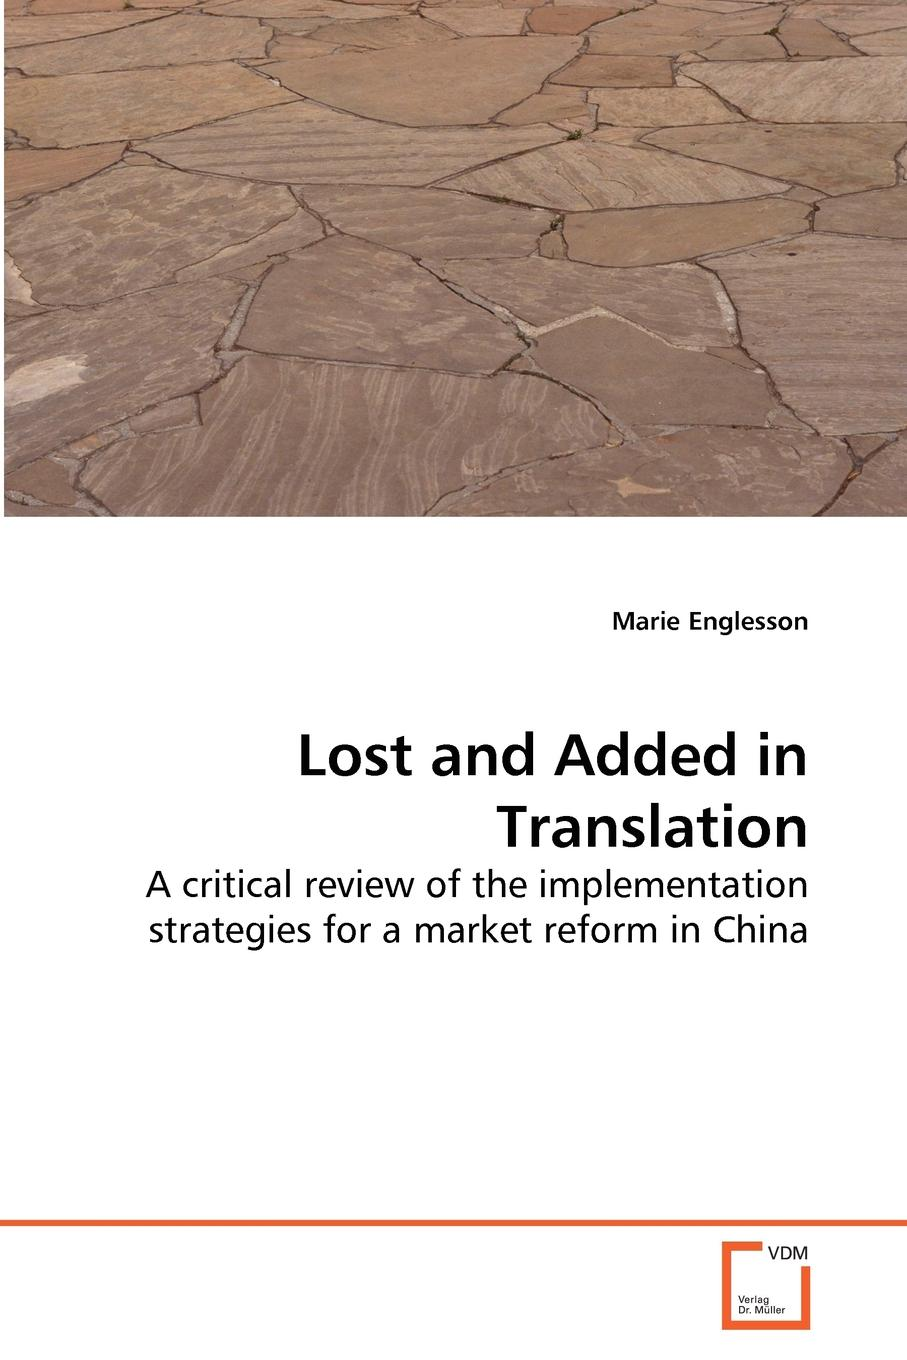 Marie Englesson Lost and Added in Translation halil kiymaz market microstructure in emerging and developed markets price discovery information flows and transaction costs